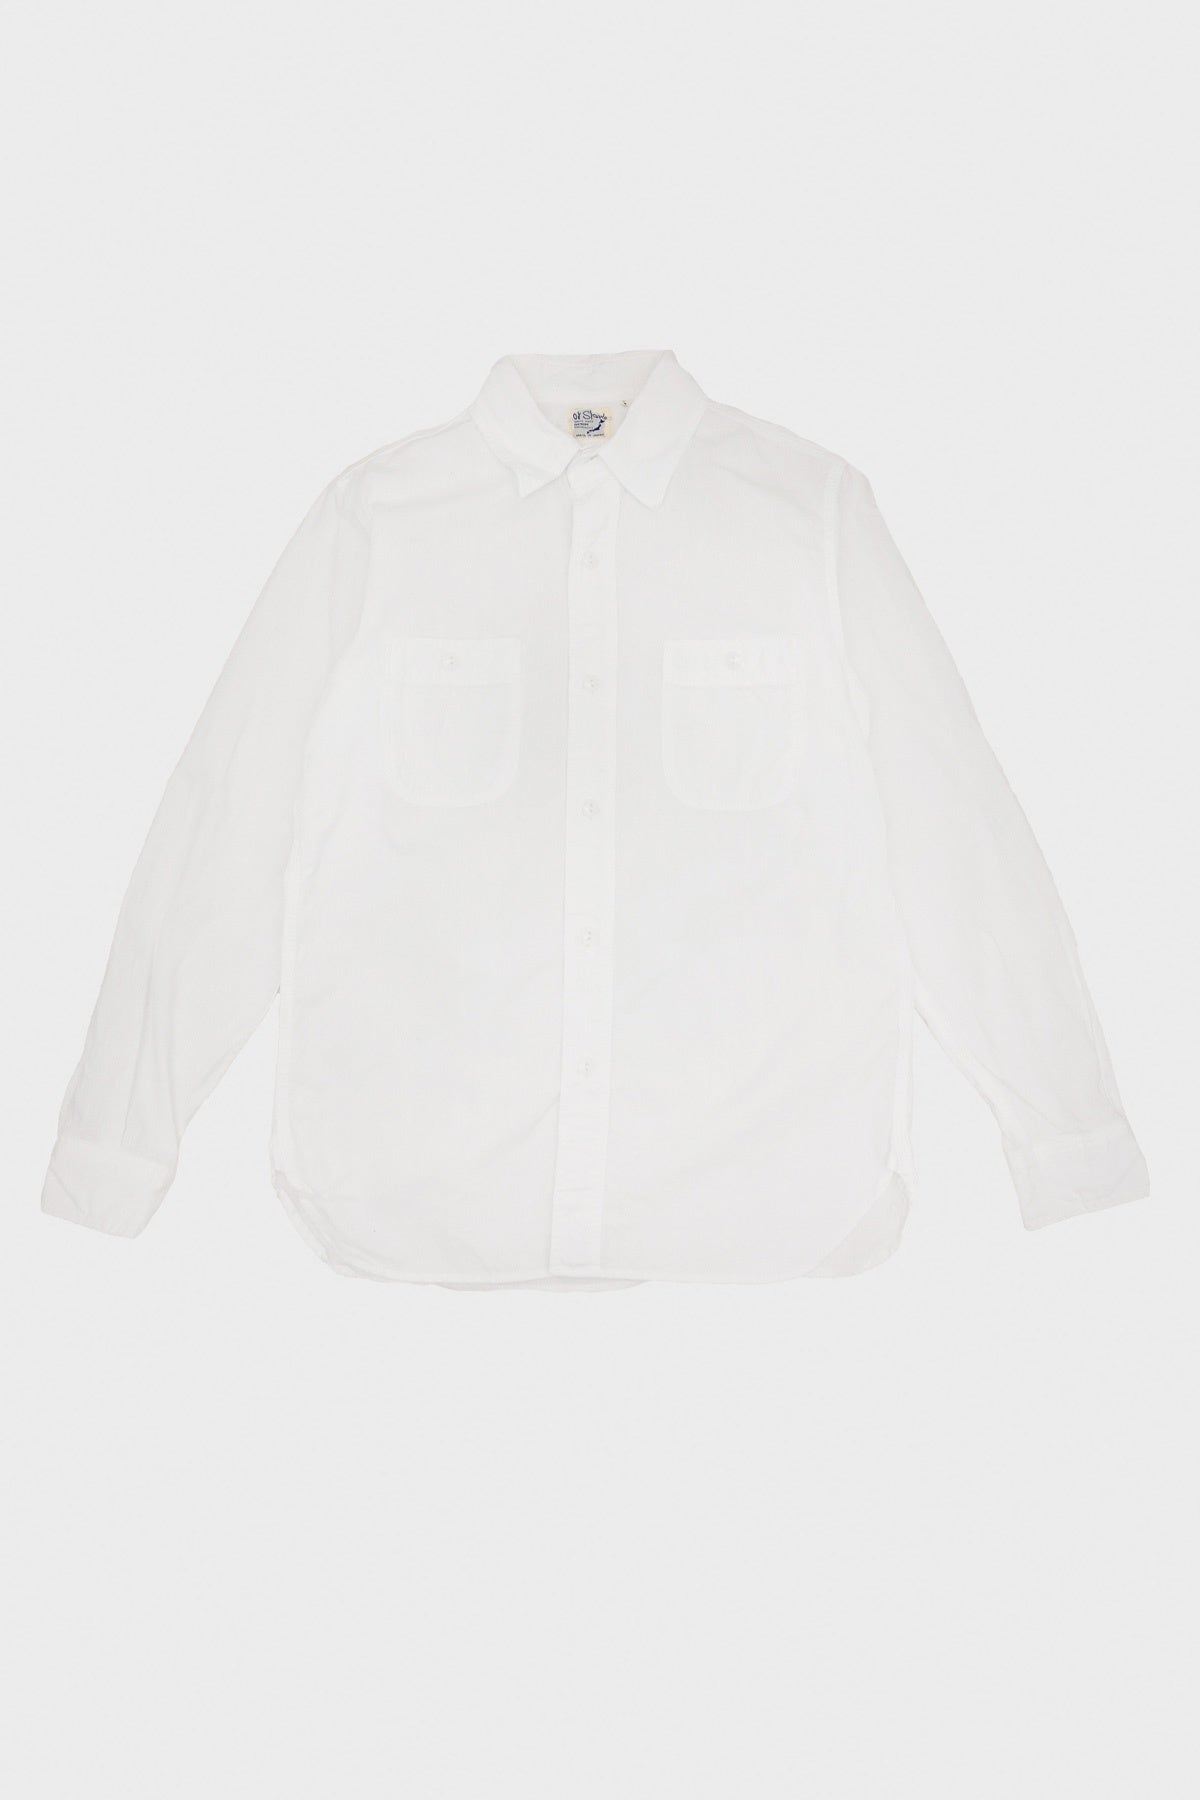 orSlow - Work Shirt - White - Canoe Club